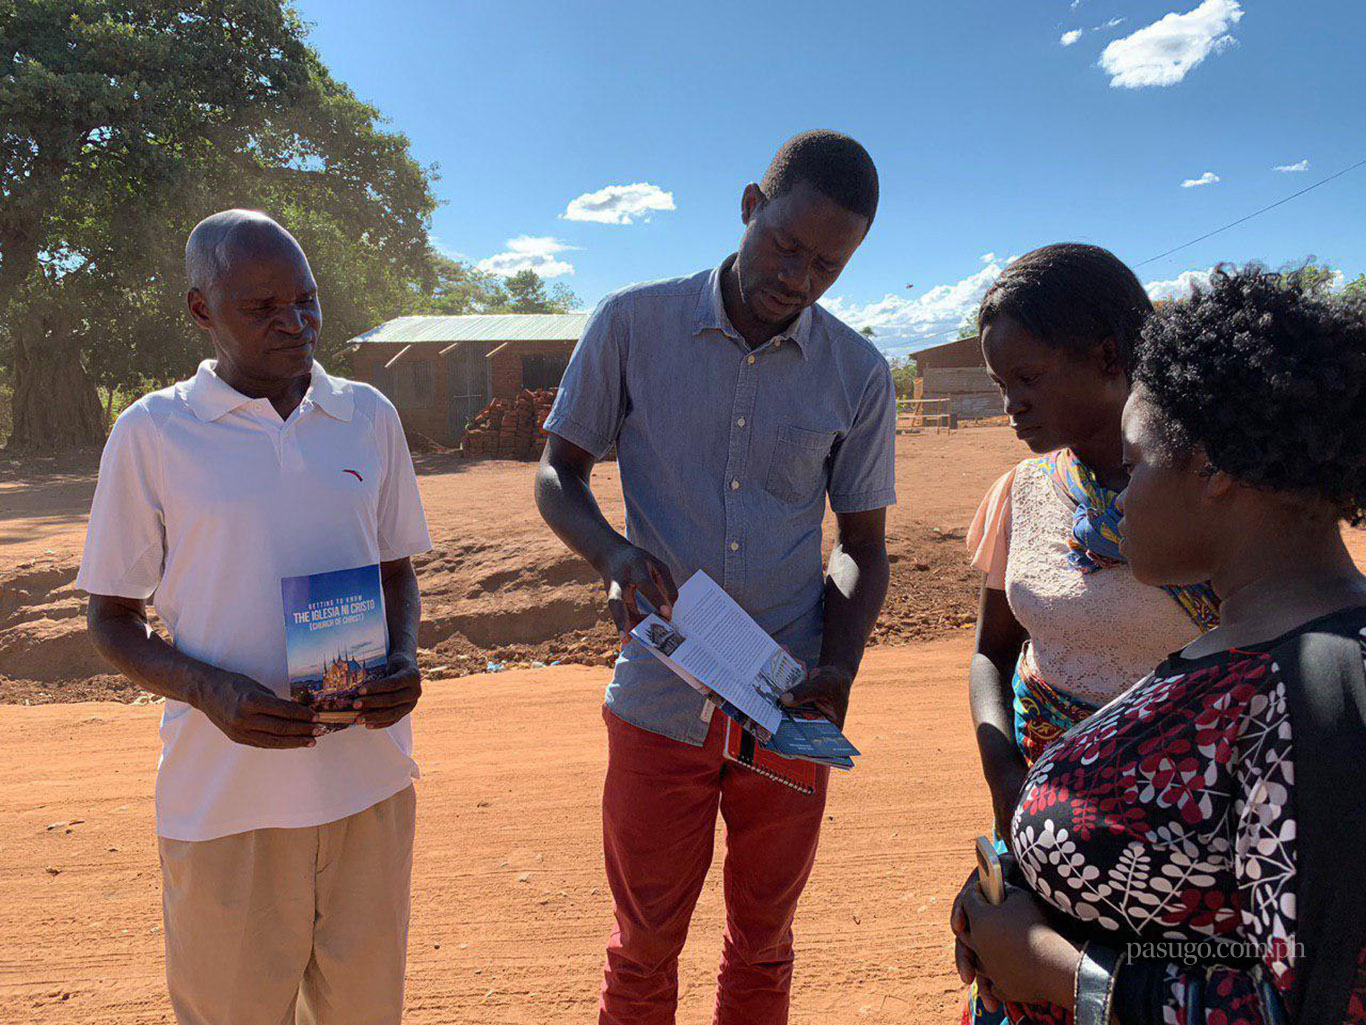 Brethren in Lilongwe, Malawi give out pamphlets to share their faith